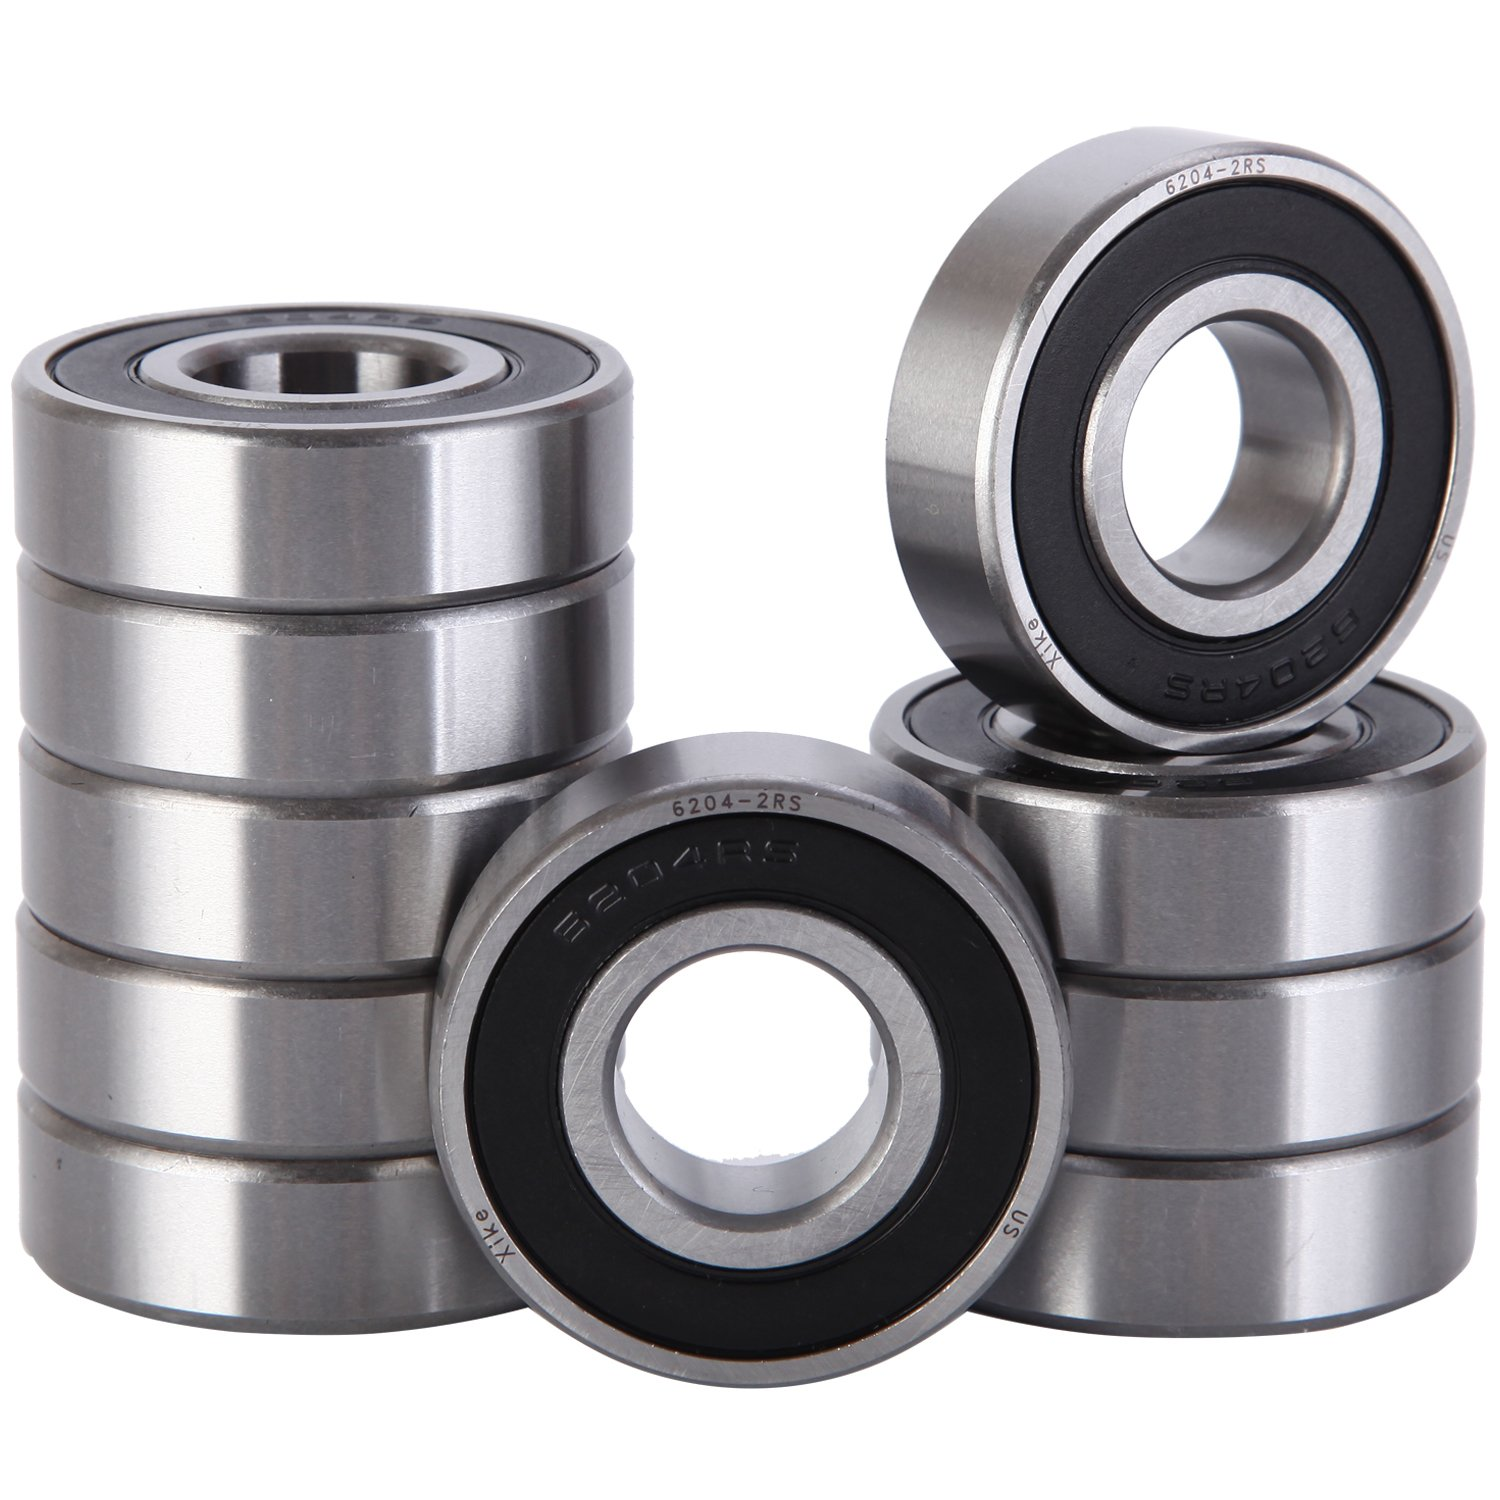 XiKe 10 Pack 6204-2RS Bearings 20x47x14mm, Stable Performance and Cost-Effective, Double Seal and Pre-Lubricated, Deep Groove Ball Bearings.